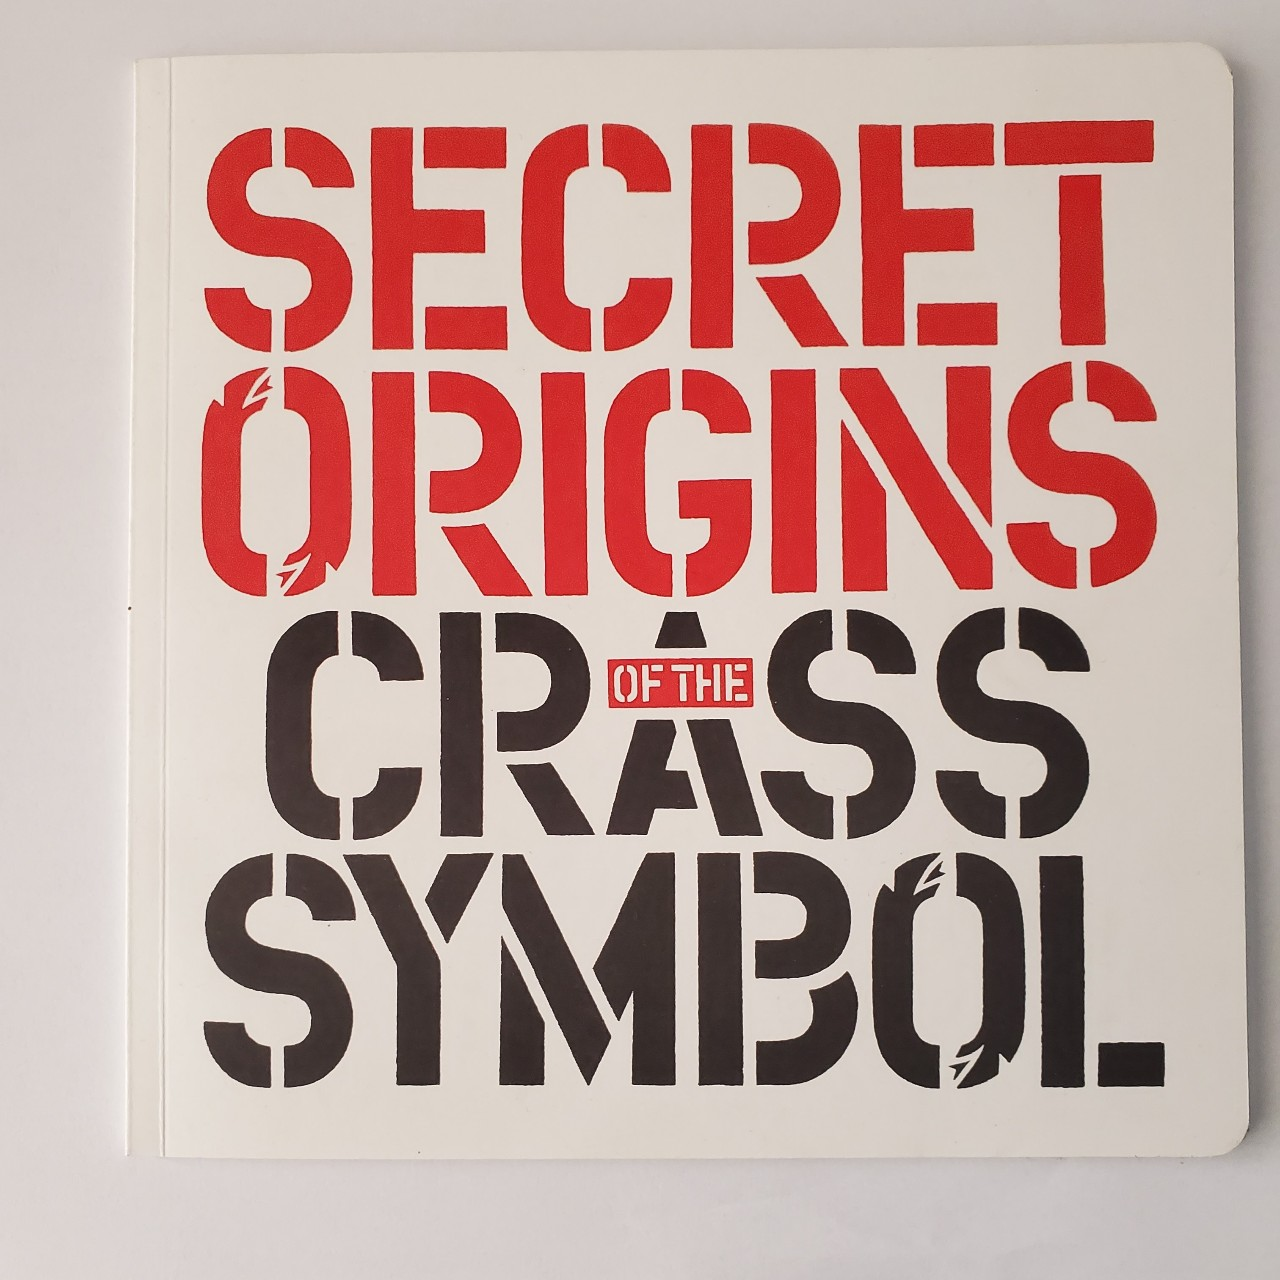 Product Image 1 - The secret origins of the